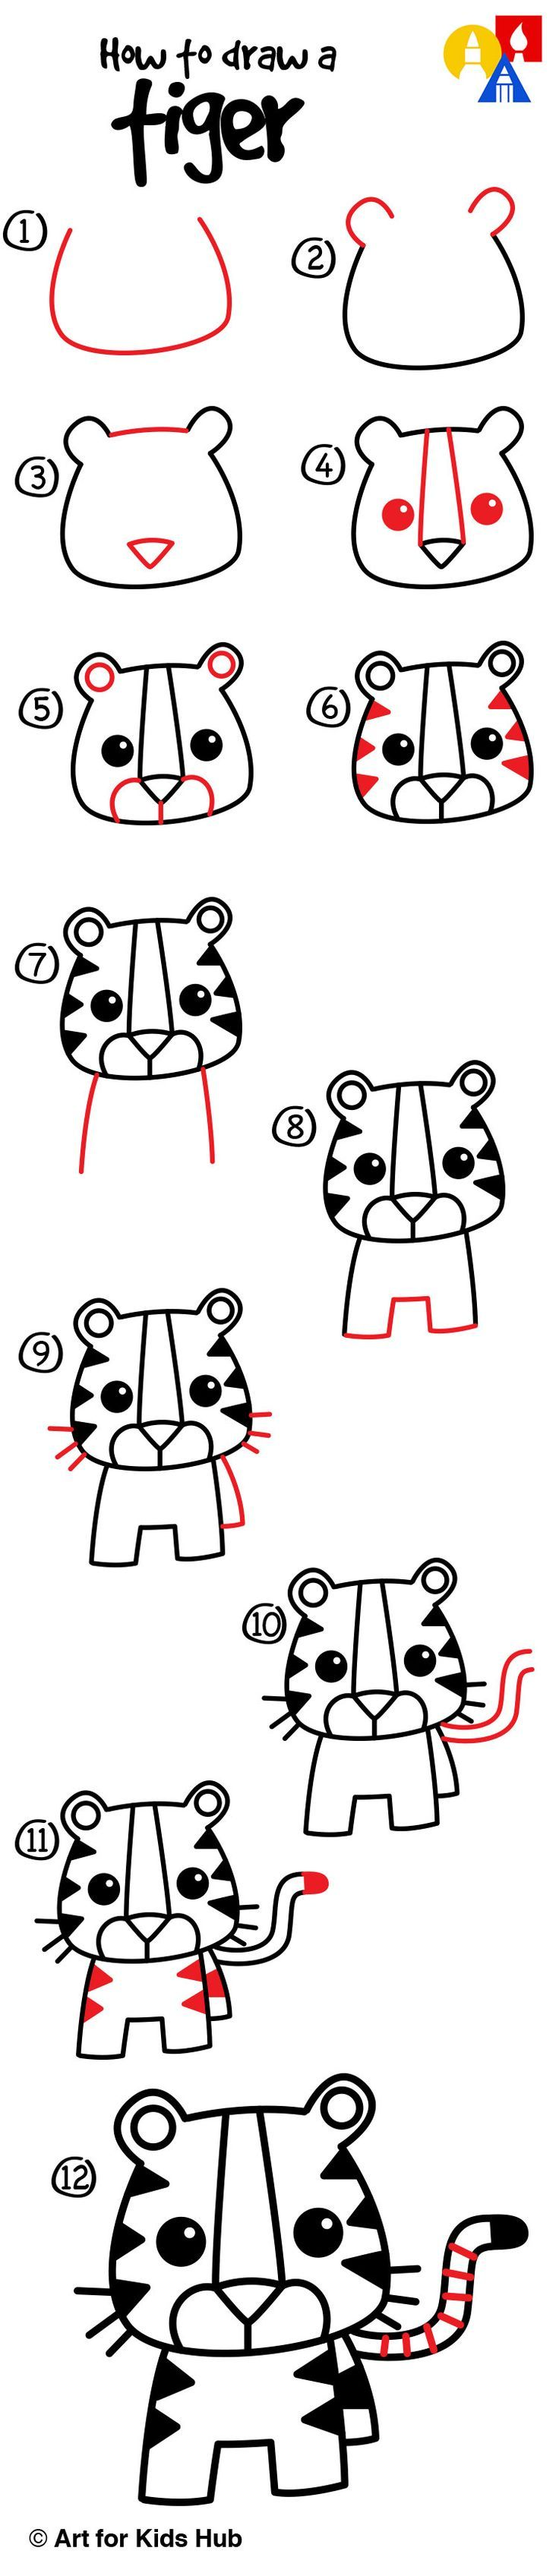 how to draw a cartoon tiger art for kids hub - Cartoon Drawings Kids